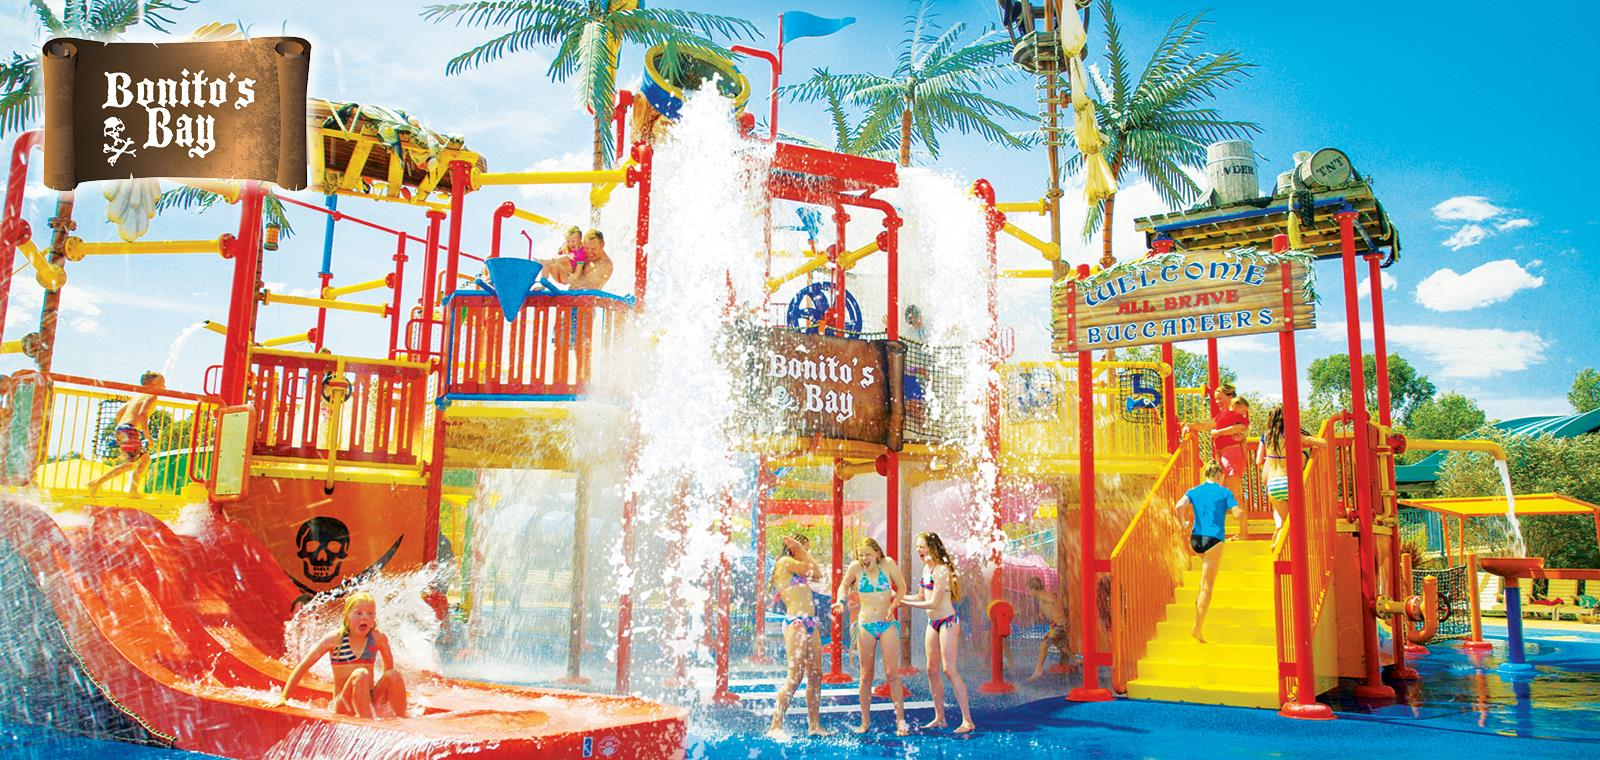 The biggest best water park in melbourne adventure park geelong adventure park home banner maxwellsz